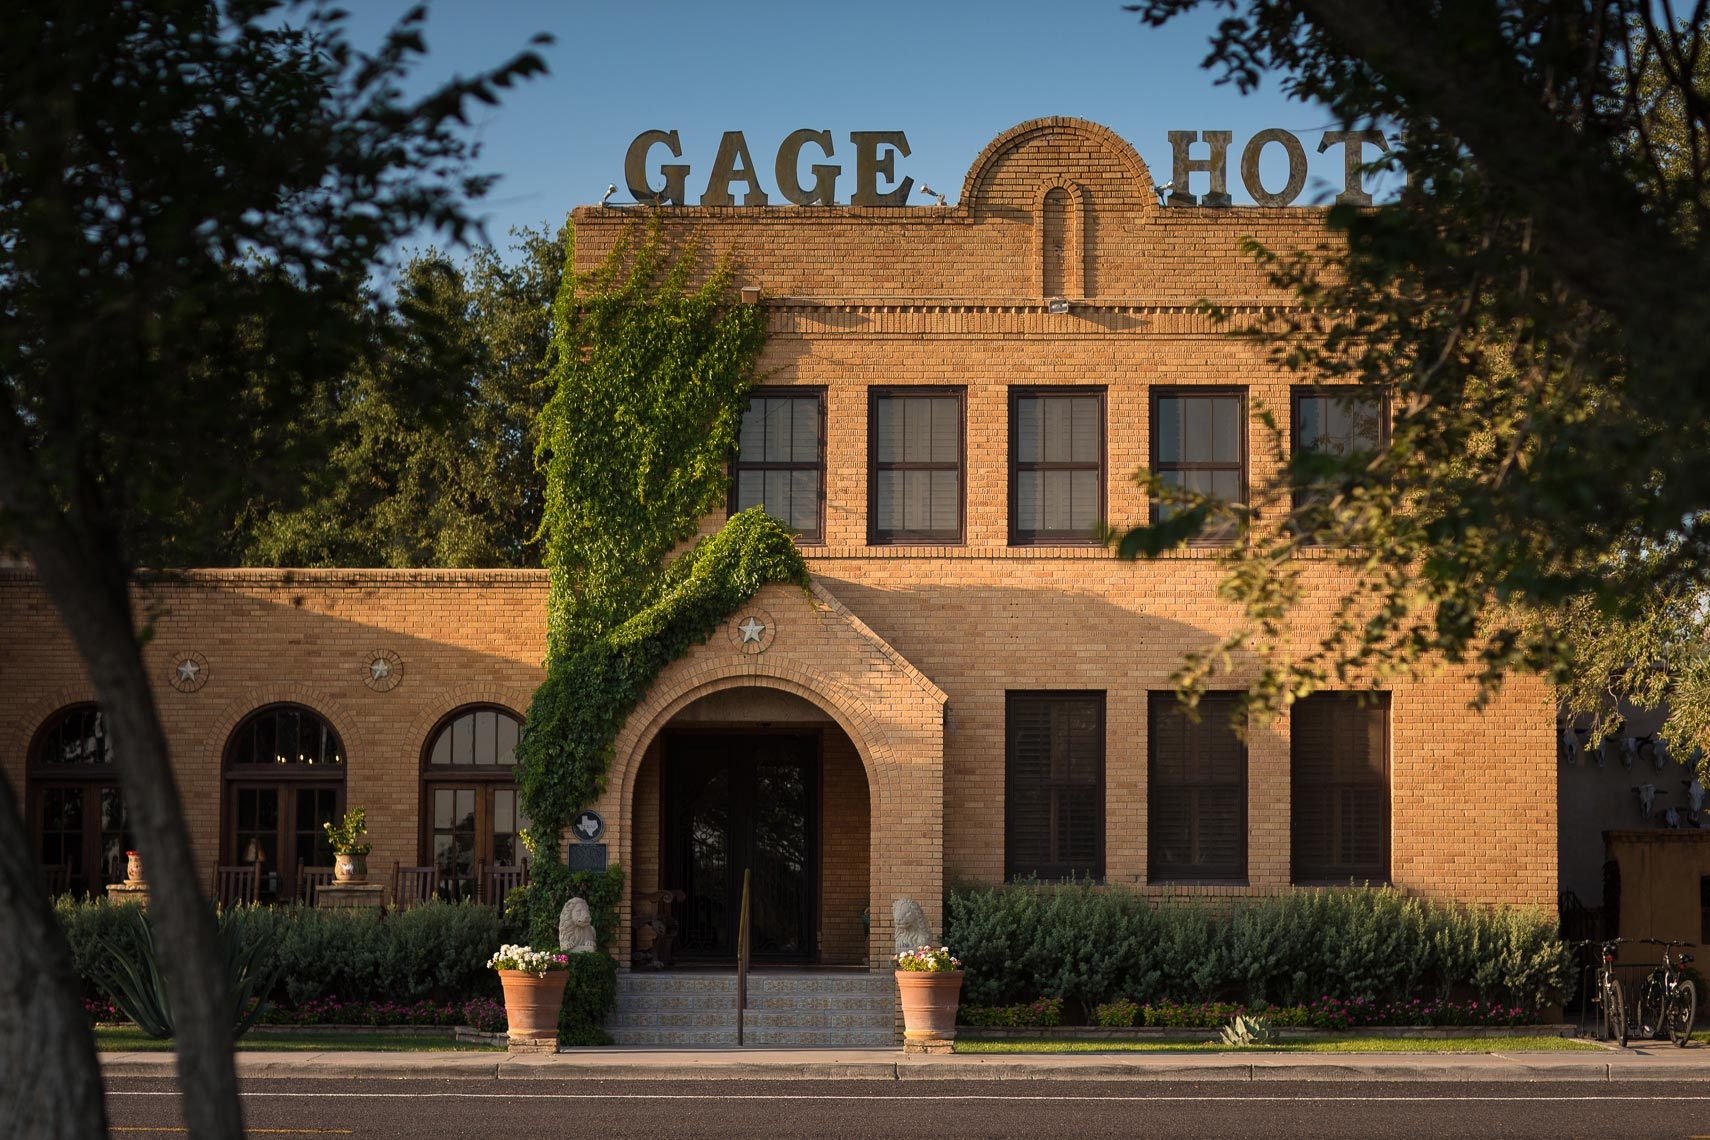 gage-hotel-entrance-jason-risner-photography